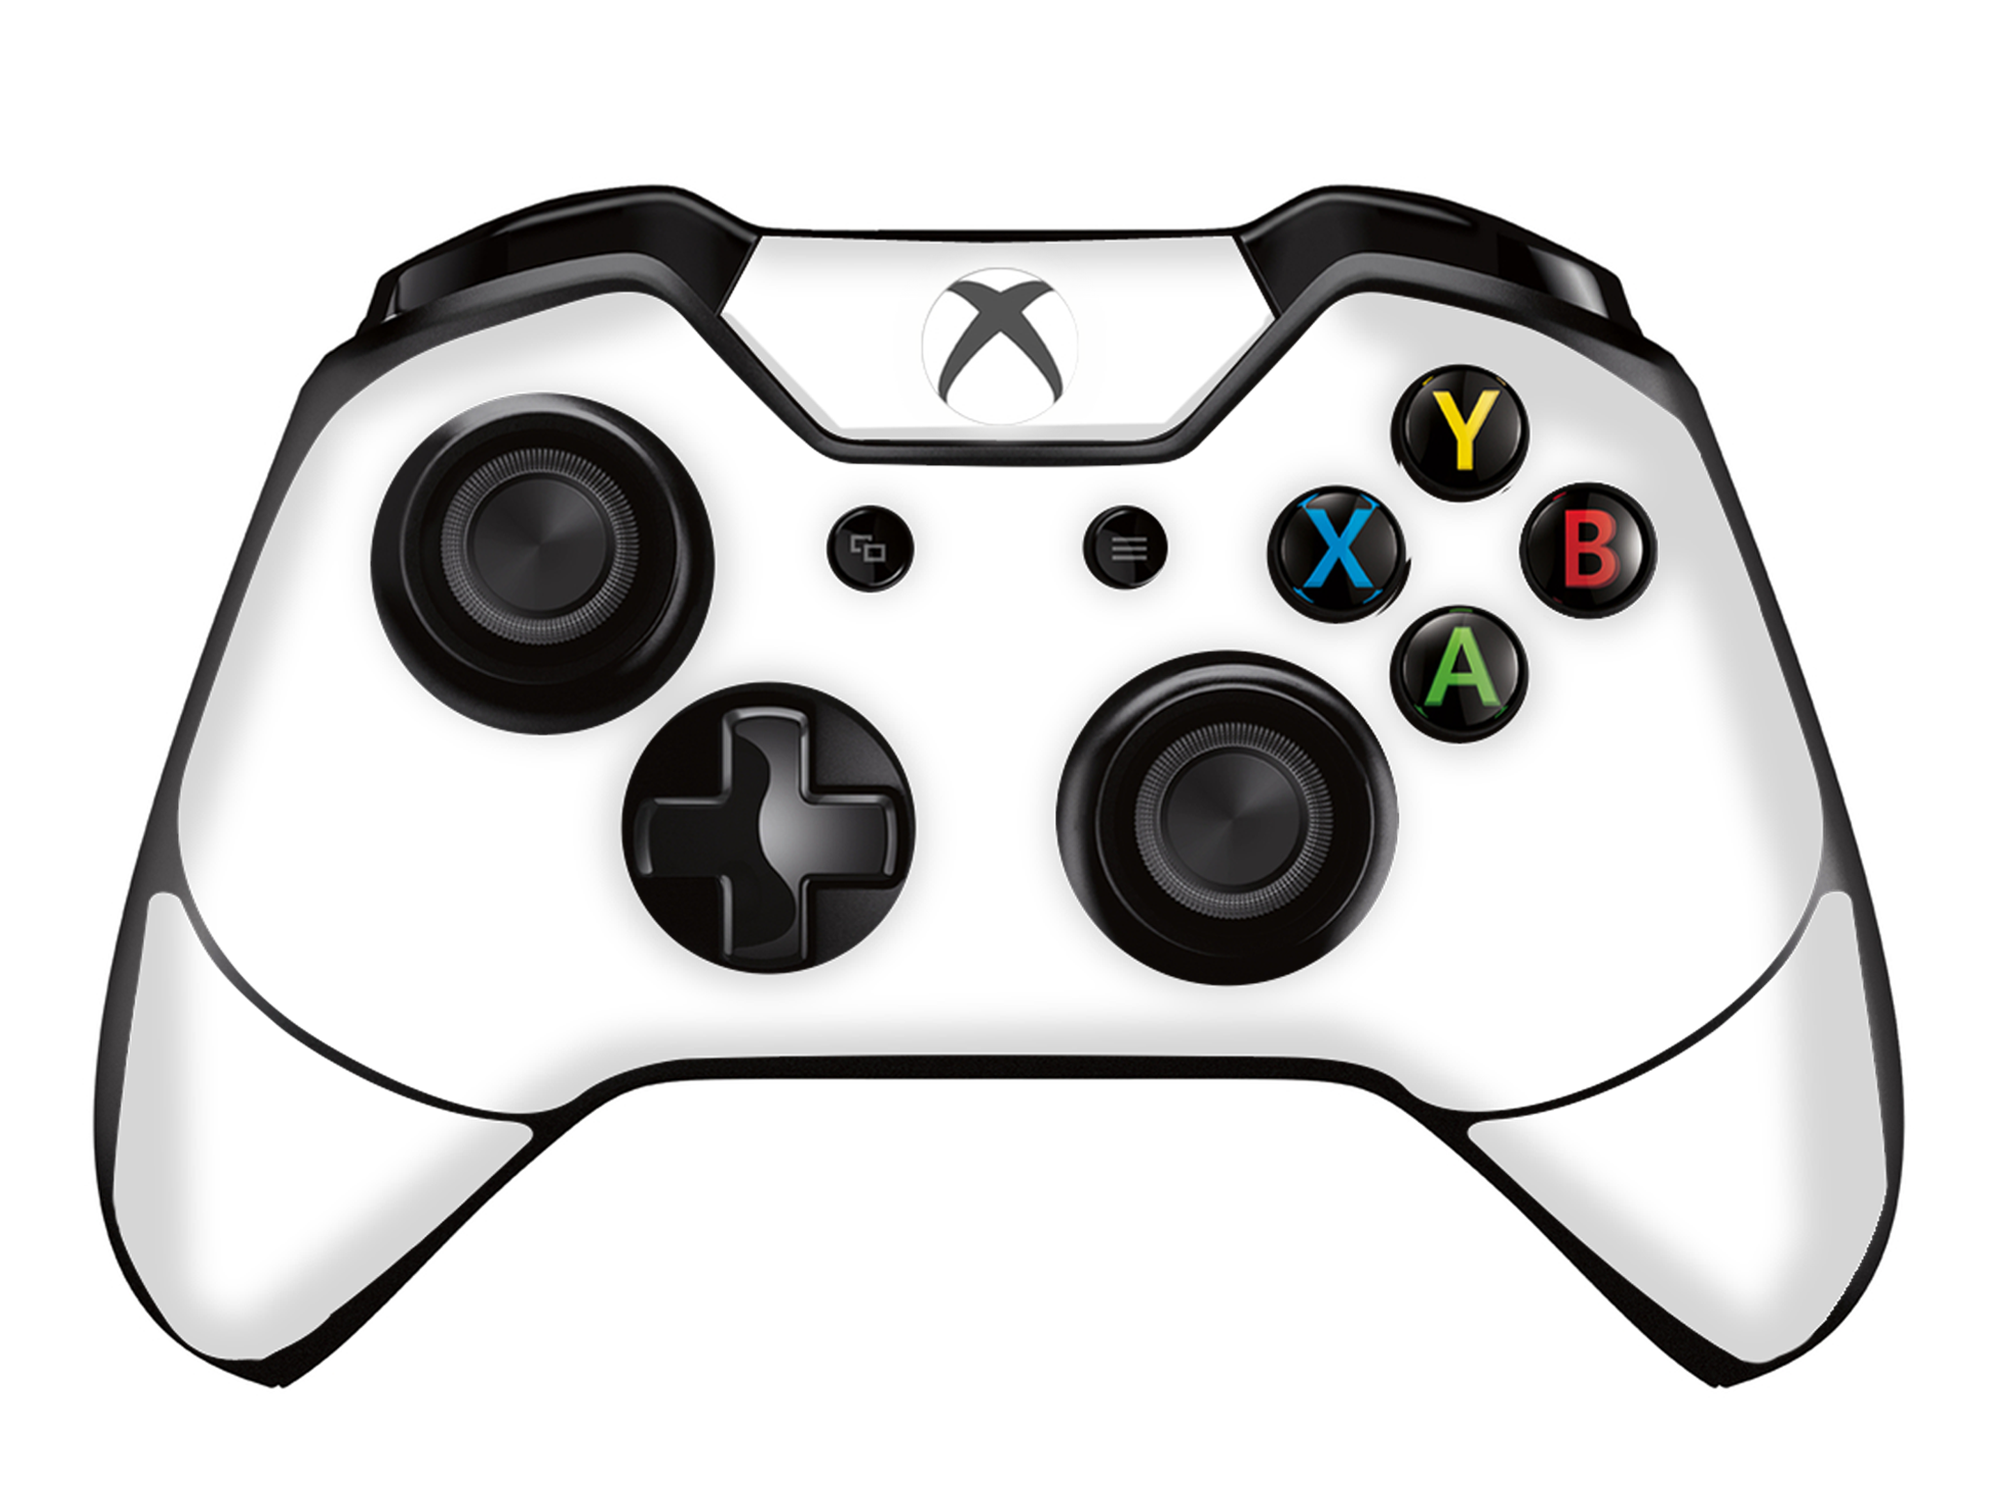 Controller clipart black and white, Controller black and ...